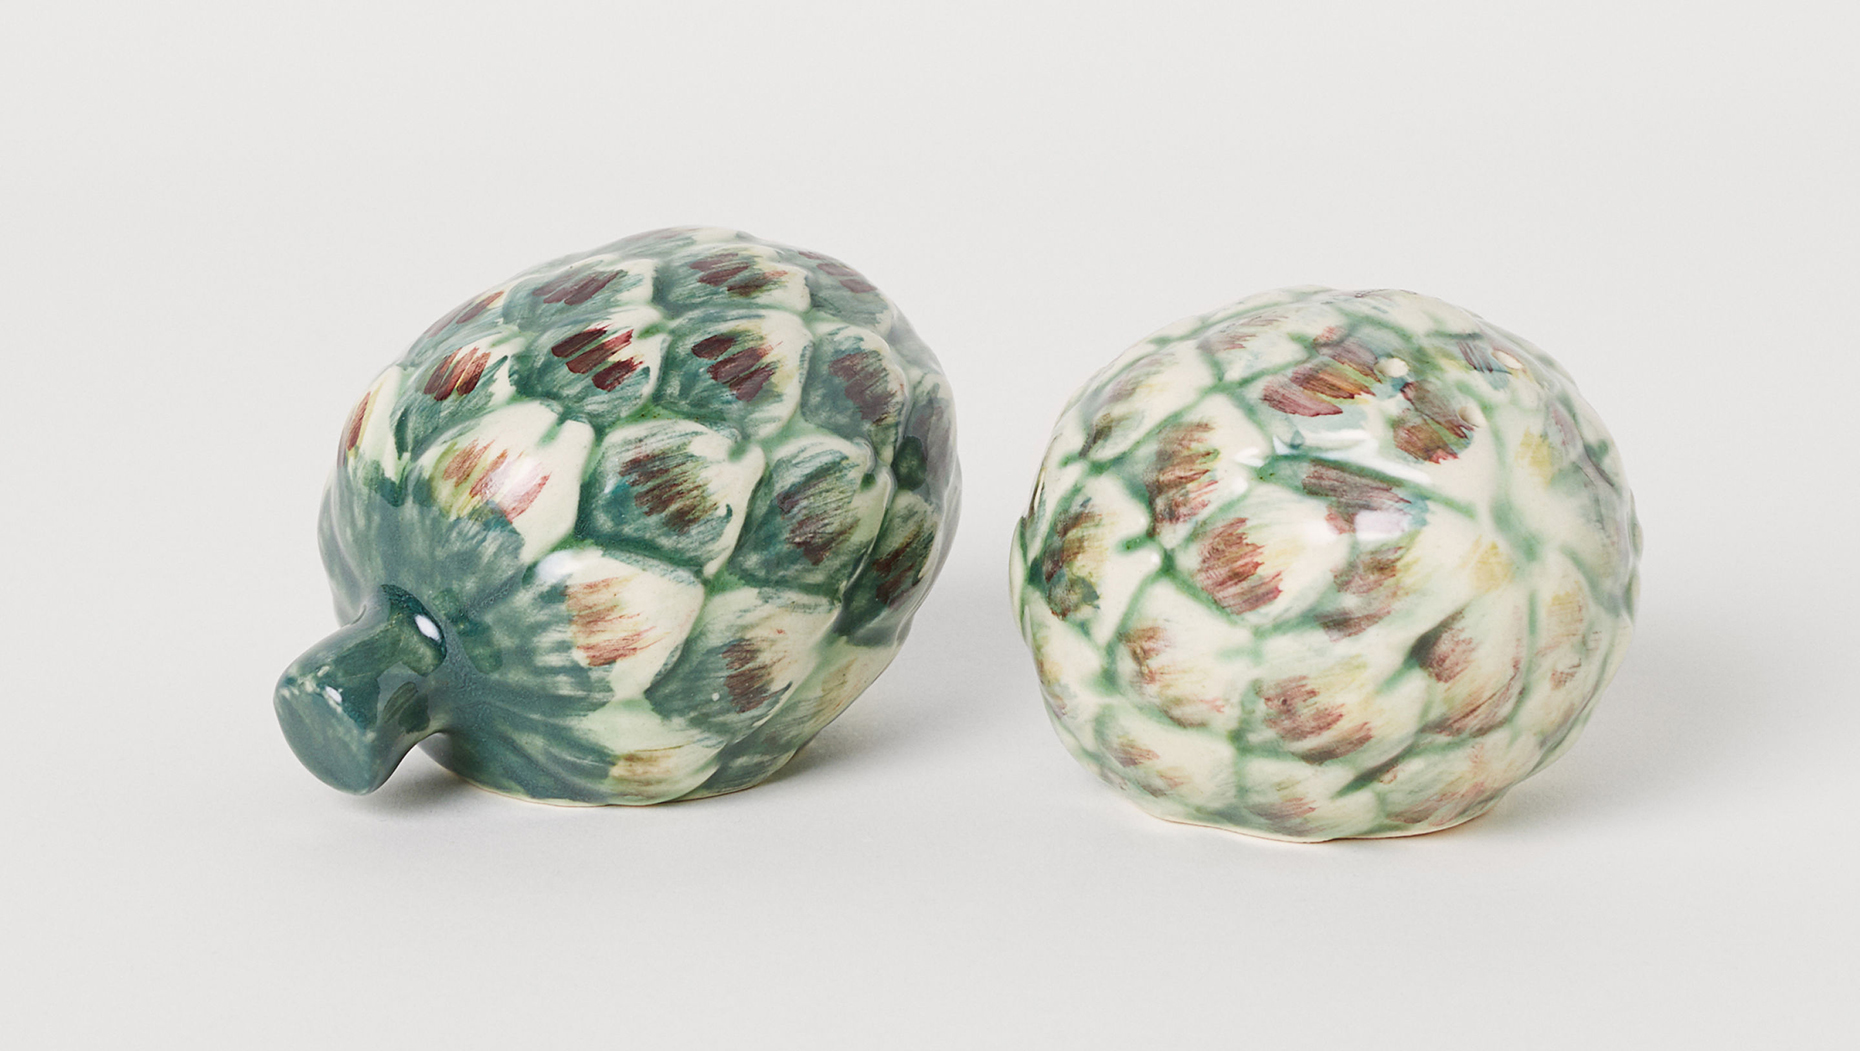 H&M Home artichoke salt and pepper shakers